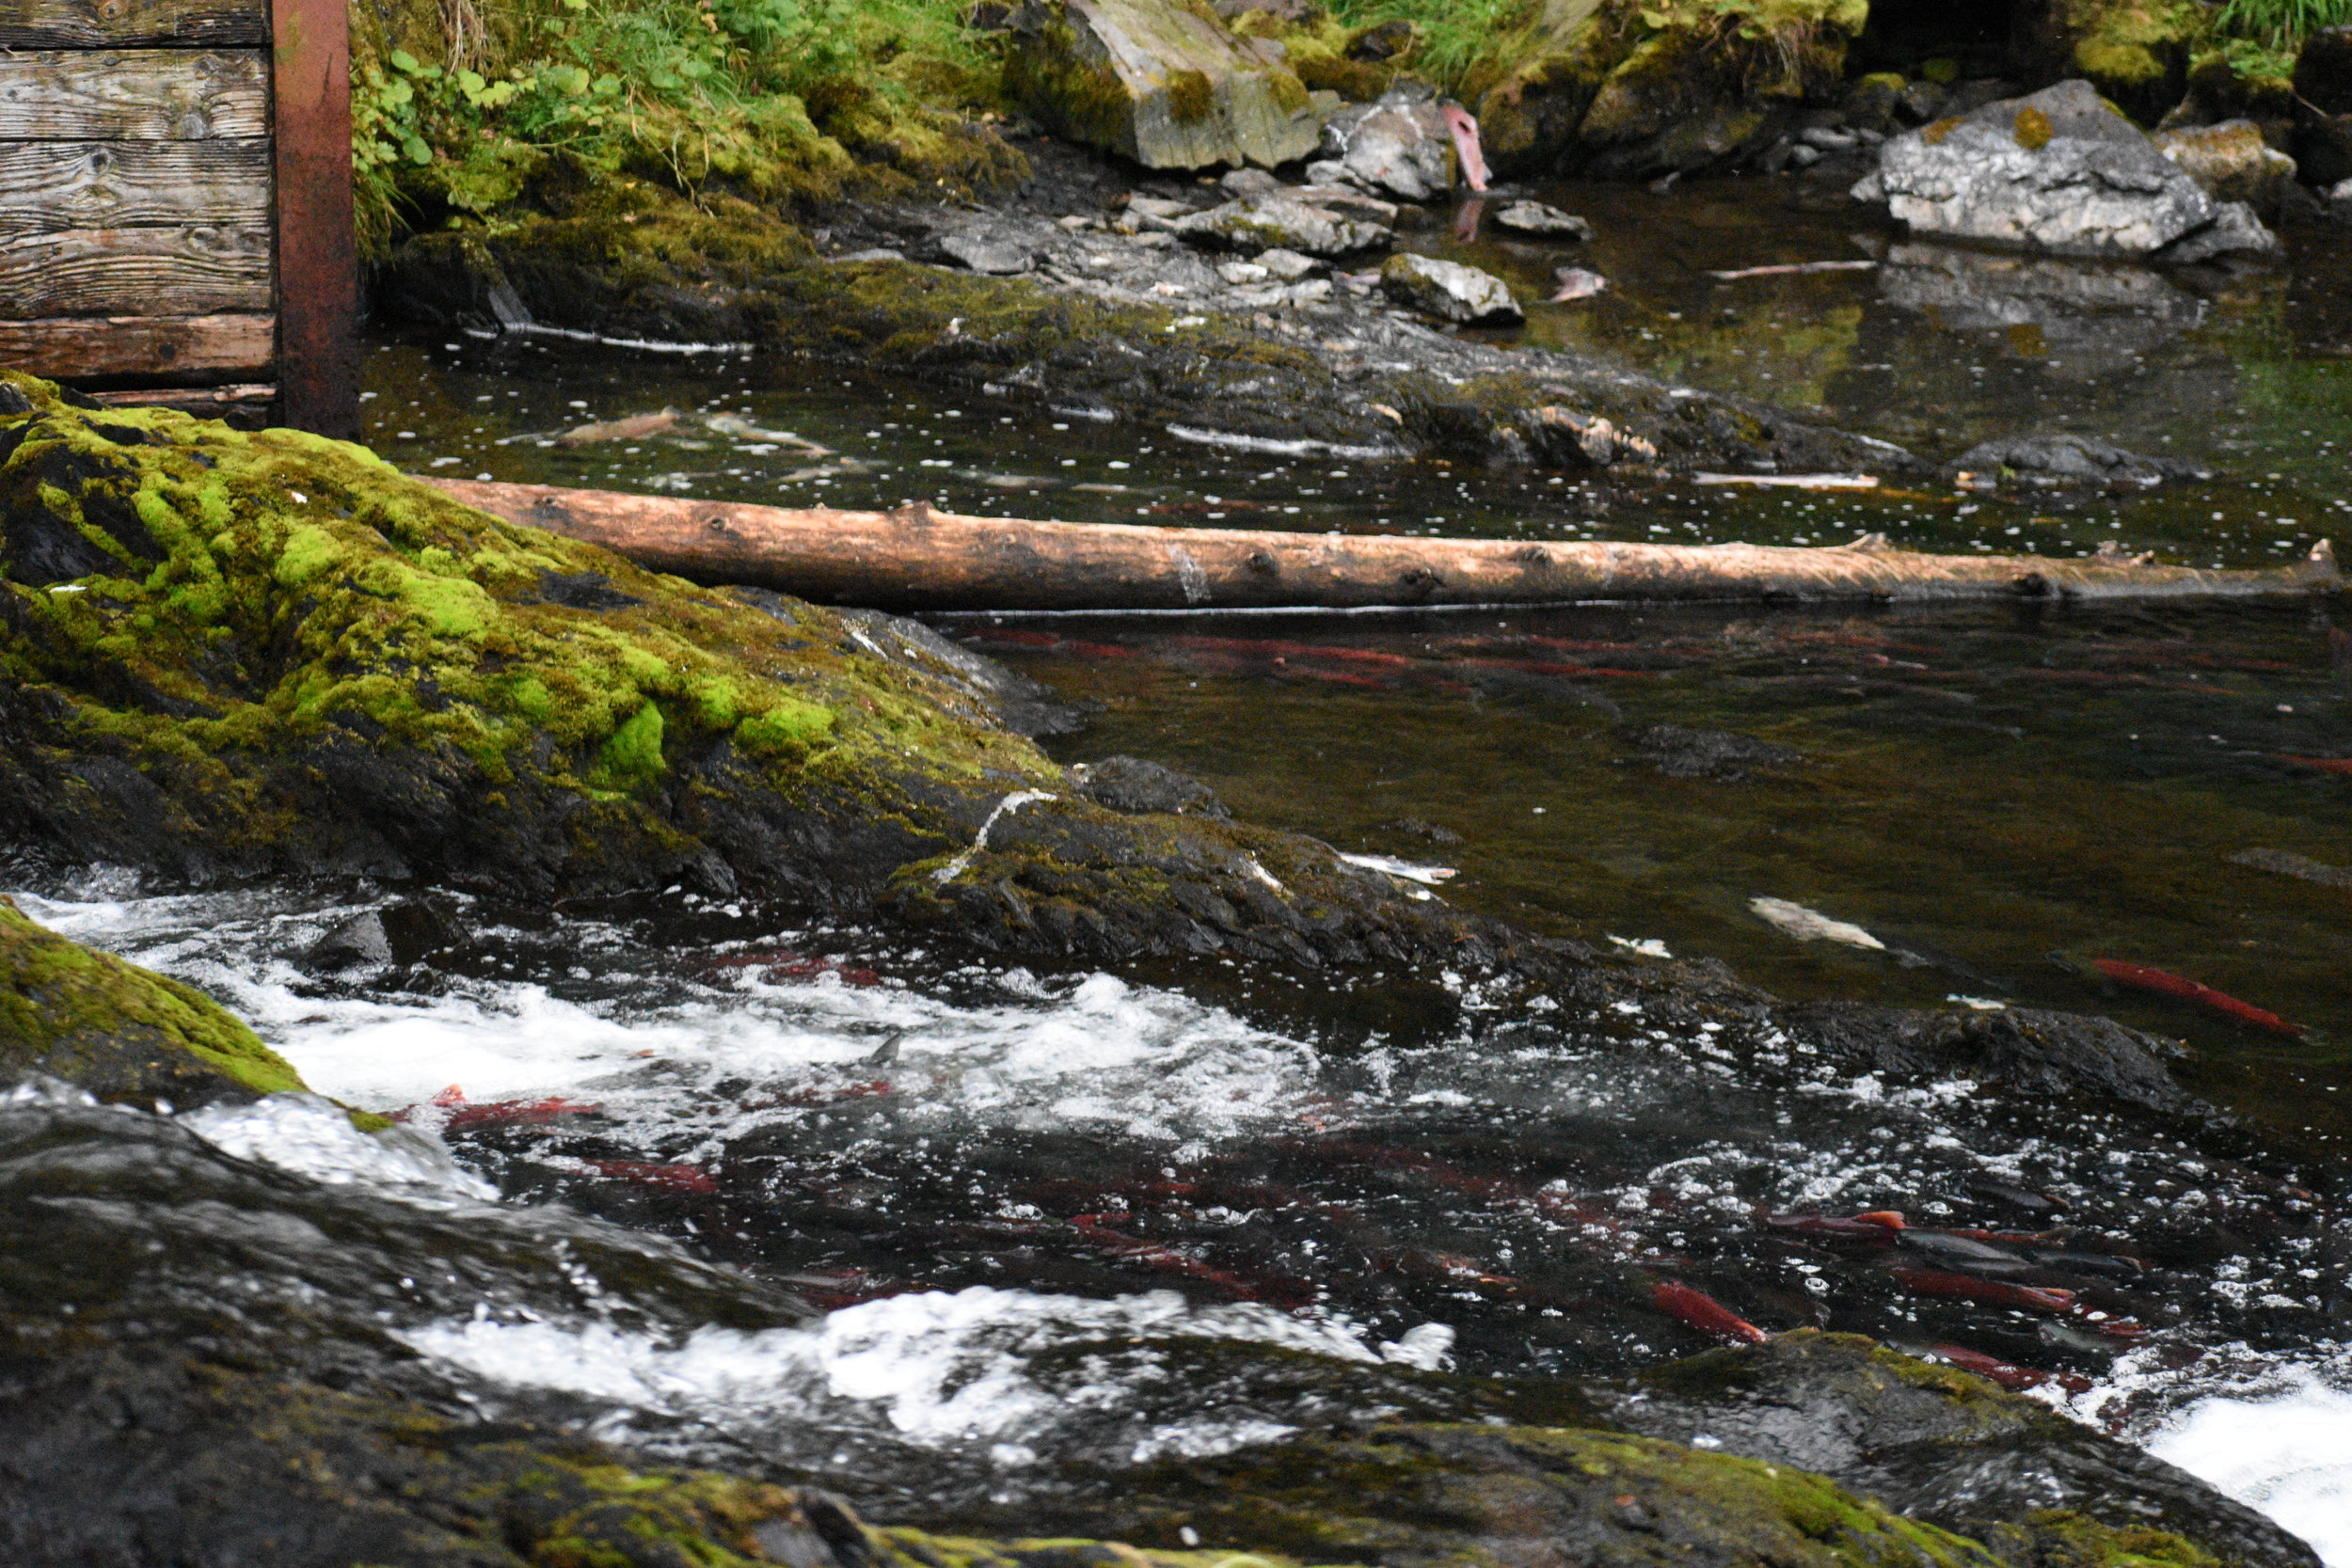 How many Sockeye Salmon can you count?